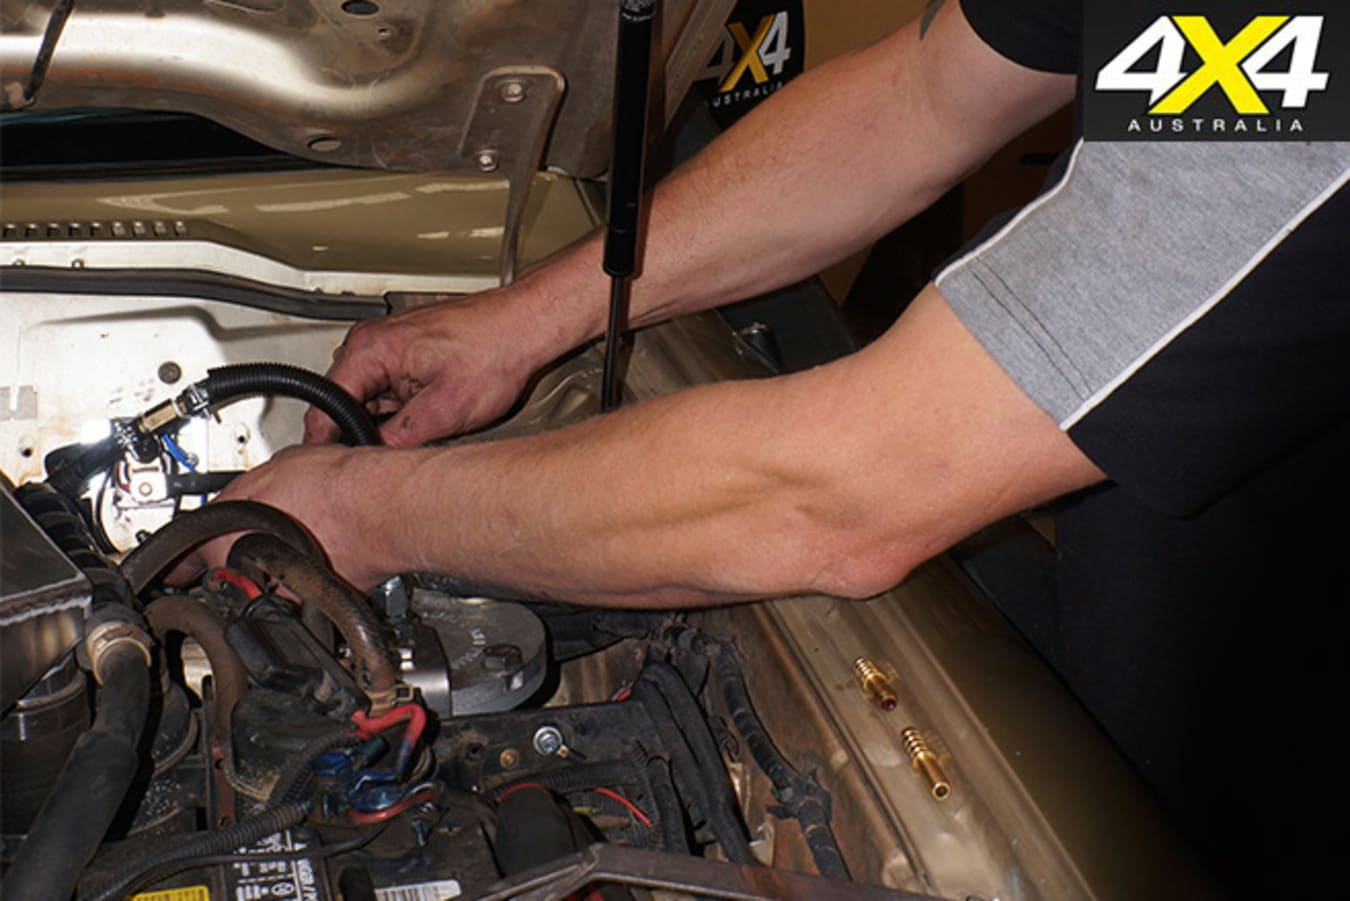 Get a qualified mechanic to give the vehicle a once-over.